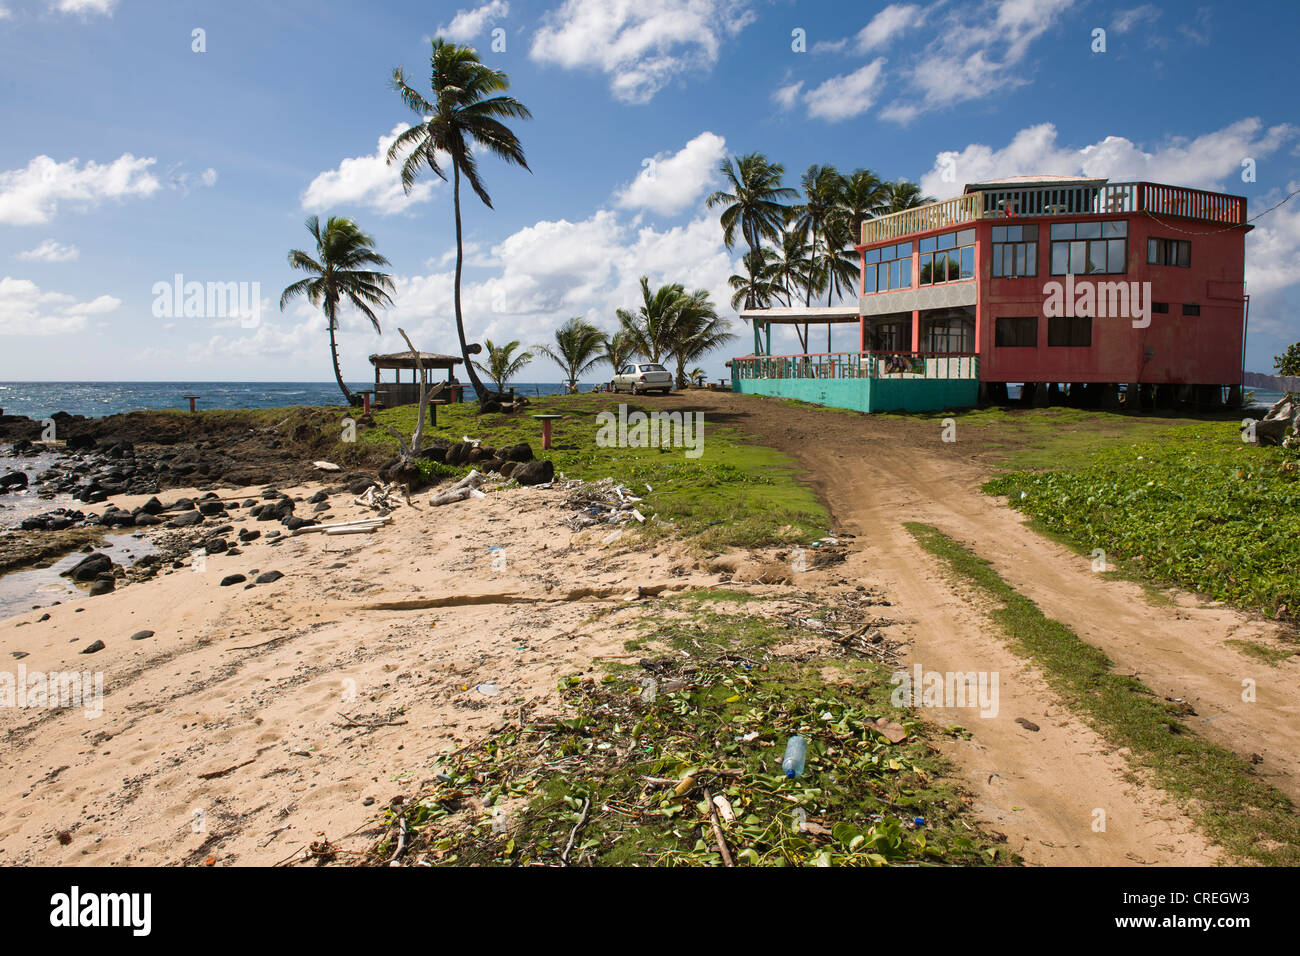 Restaurant, polluted beach, Big Corn Island, Caribbean Sea, Nicaragua, Central America - Stock Image